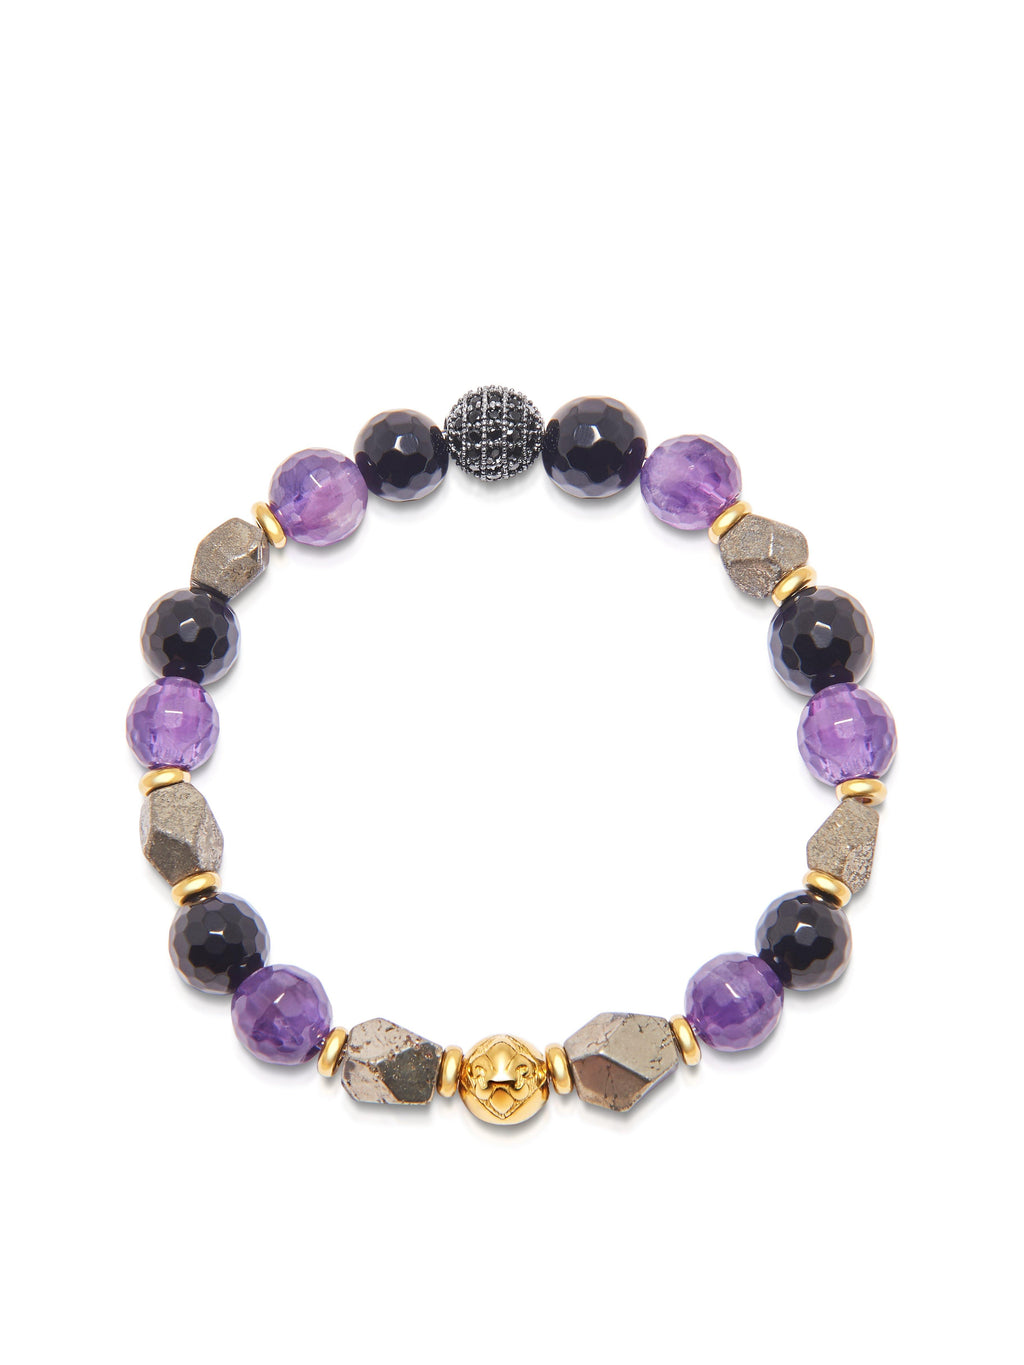 Women's Wristband with Agate, Amethyst and Iron Pyrite